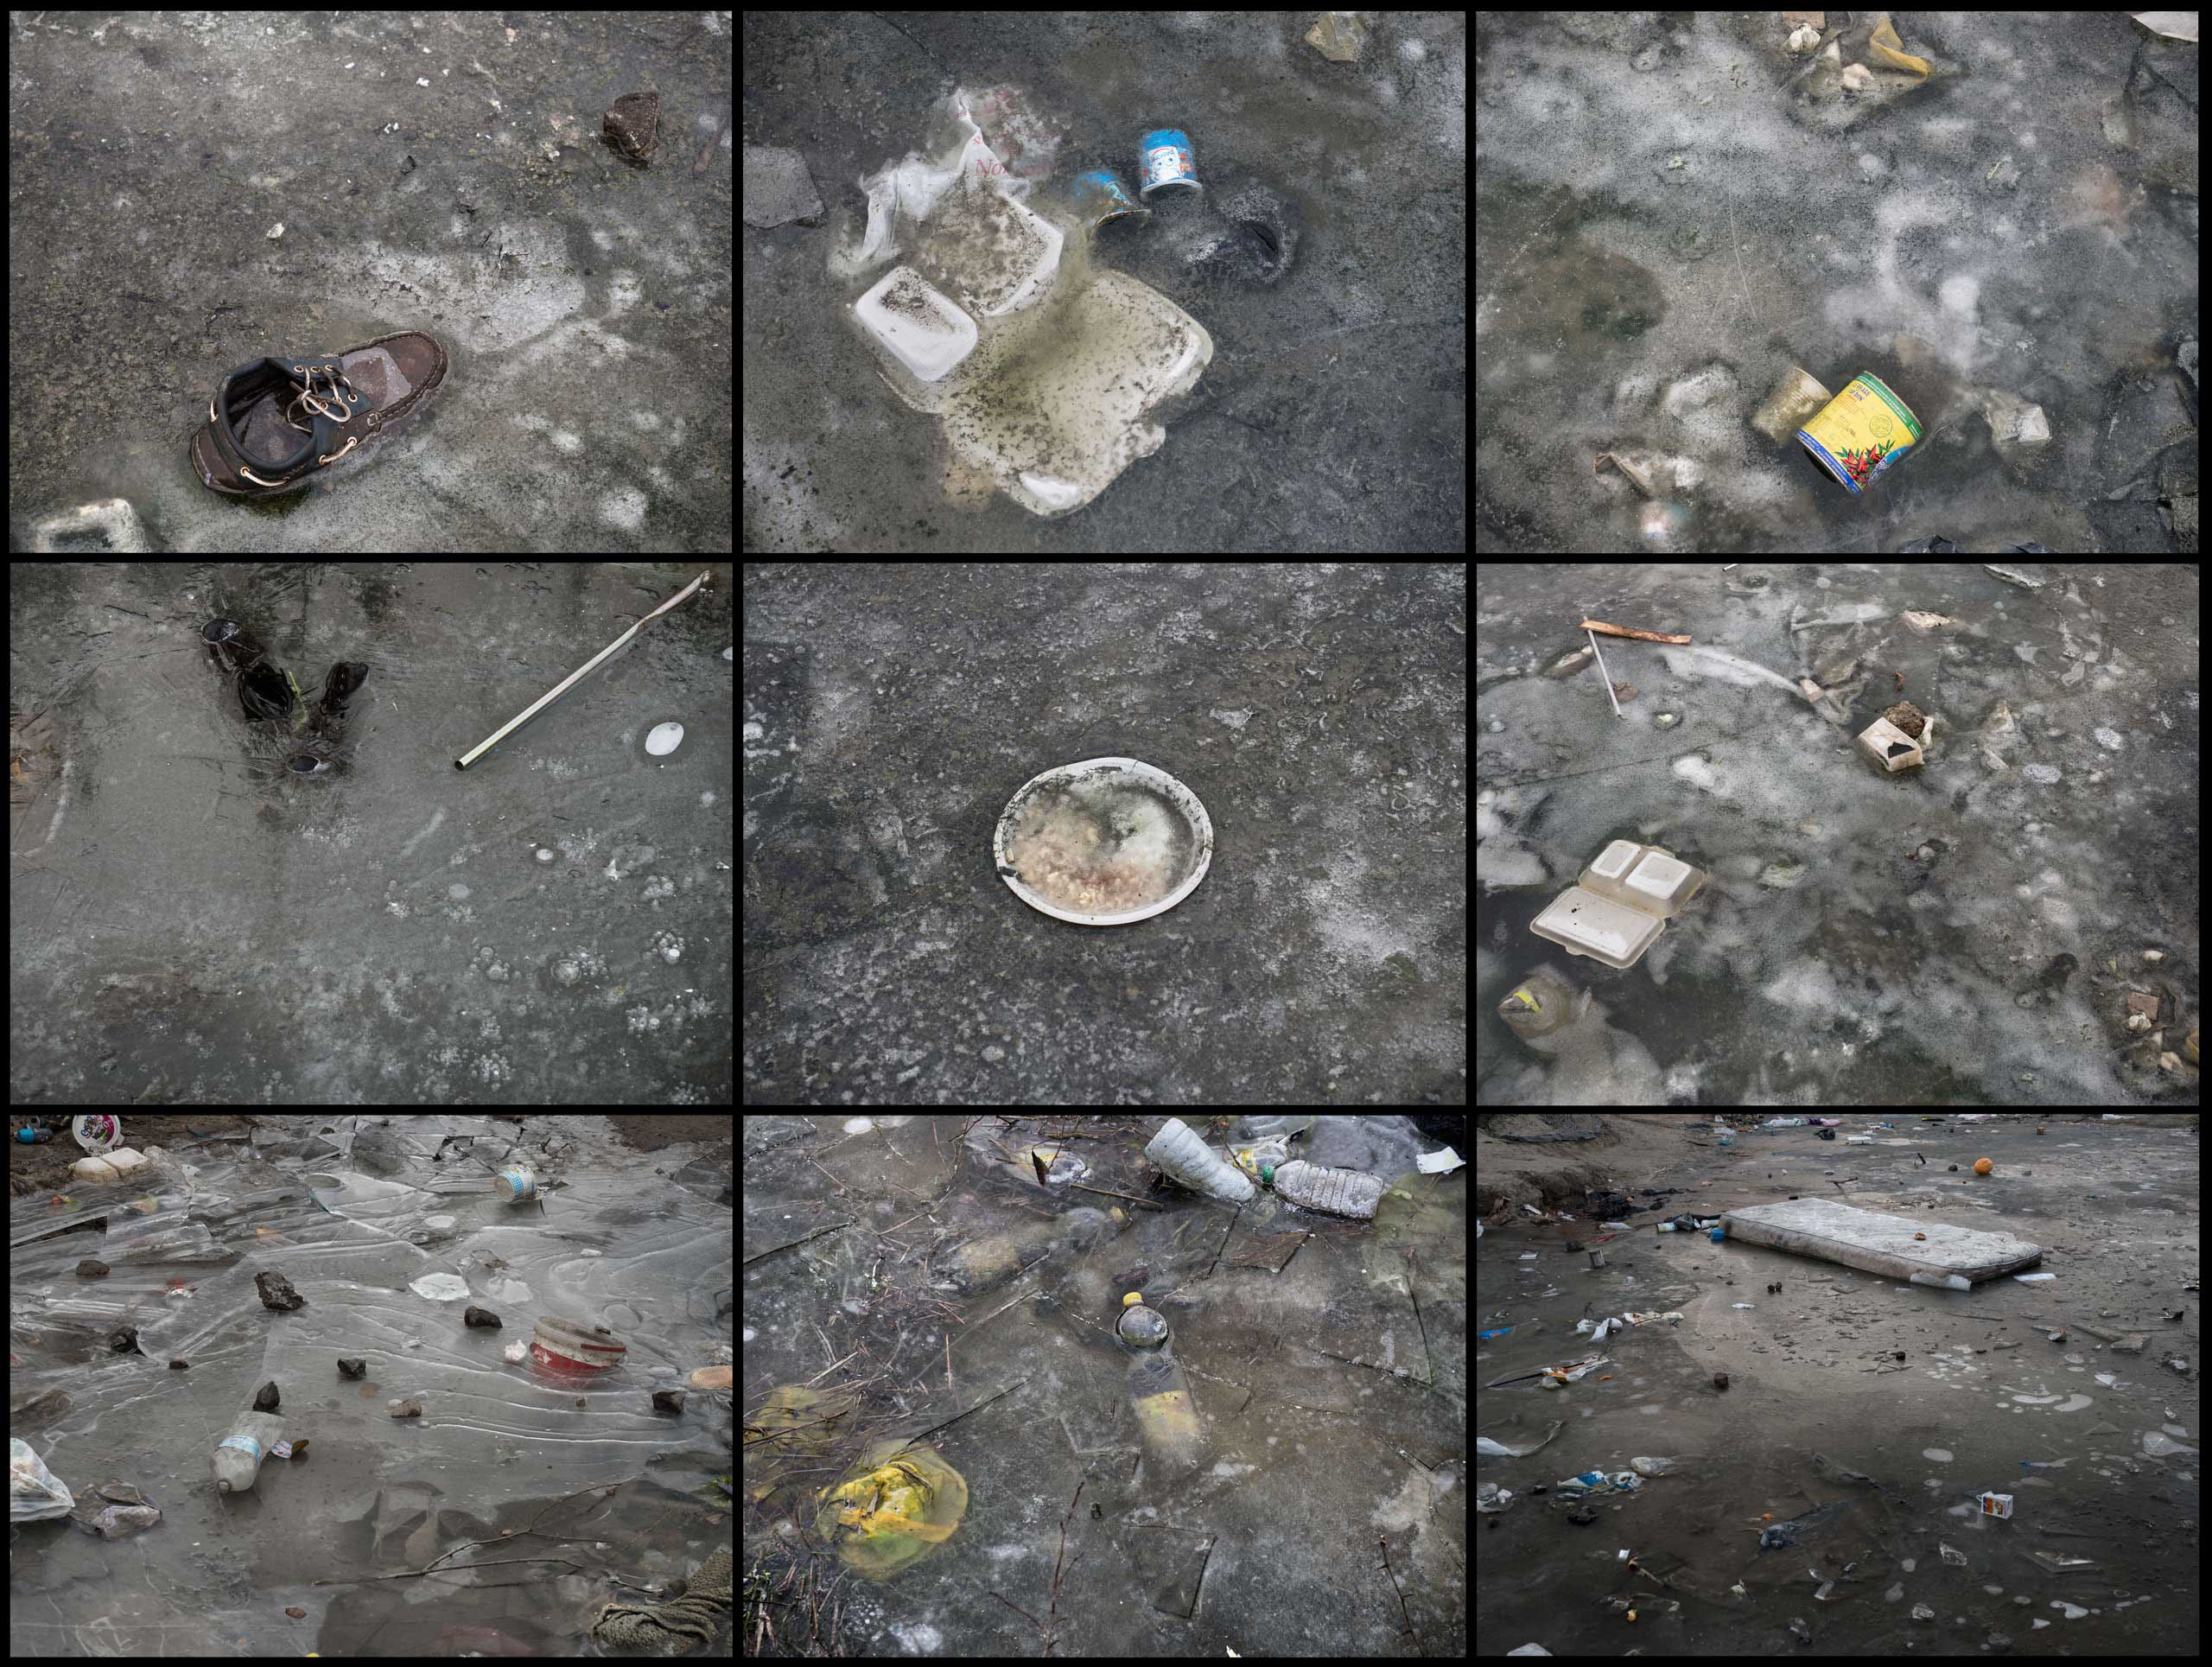 Details of personal belongings and trash frozen in the ice in the  jungle  in Calais, France, where a  mix of refugees, asylum seekers and economic migrants from Darfur, Afghanistan, Syria, Iraq, Eritrea have come to live in the hopes of eventually making their way to the United Kingdom, Jan. 2015.